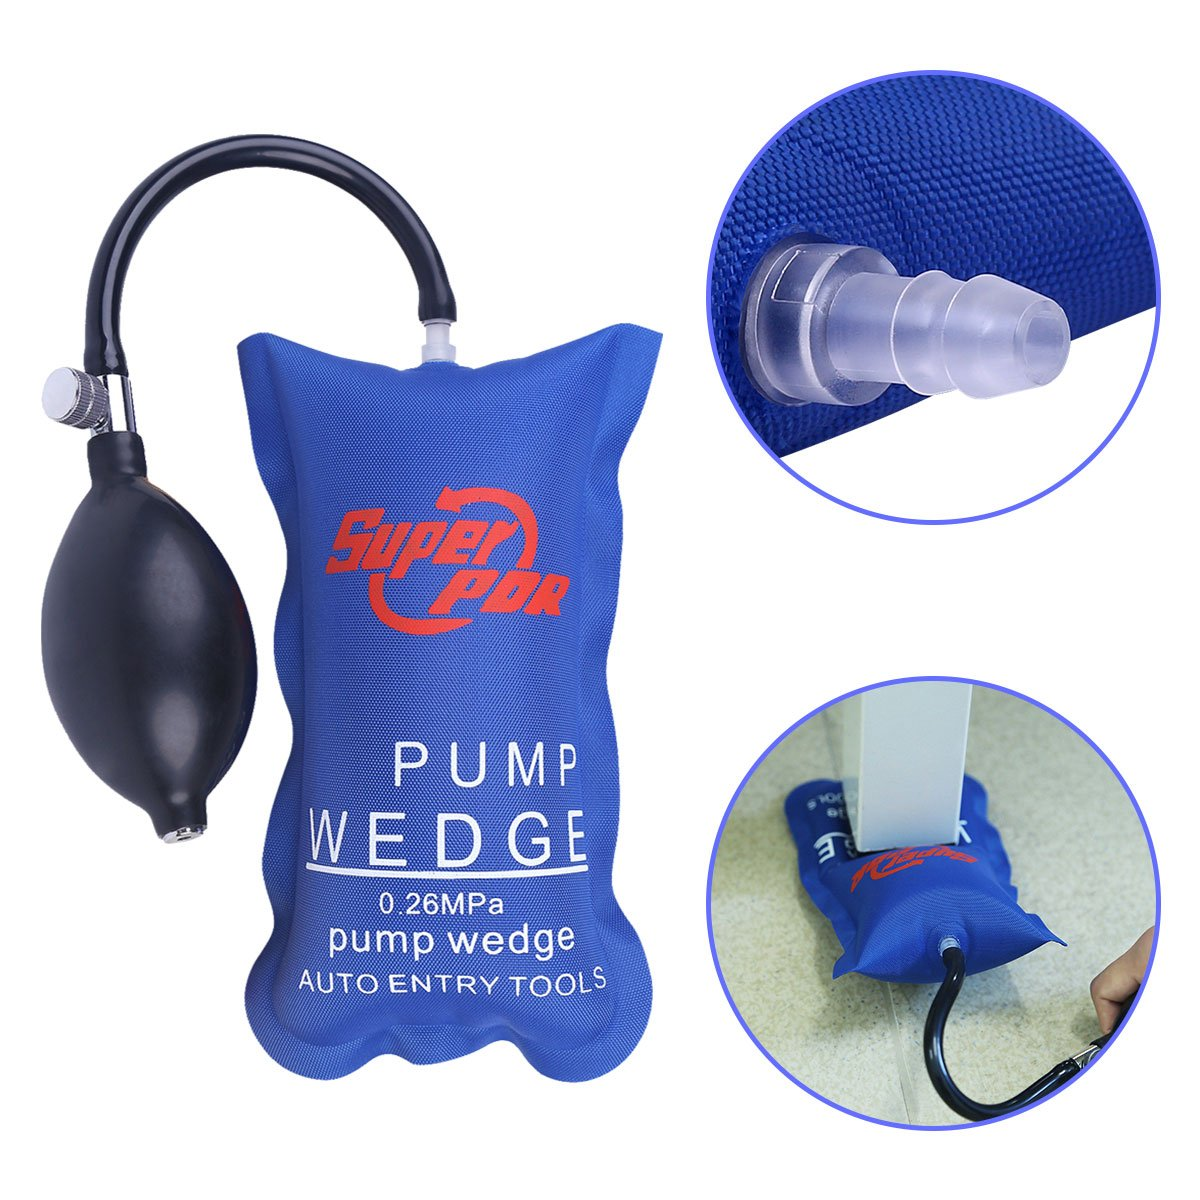 Super PDR 1Pcs Pump Air Wedge Alignment Inflatable Shim Air Cushioned Powerful Hand Tools